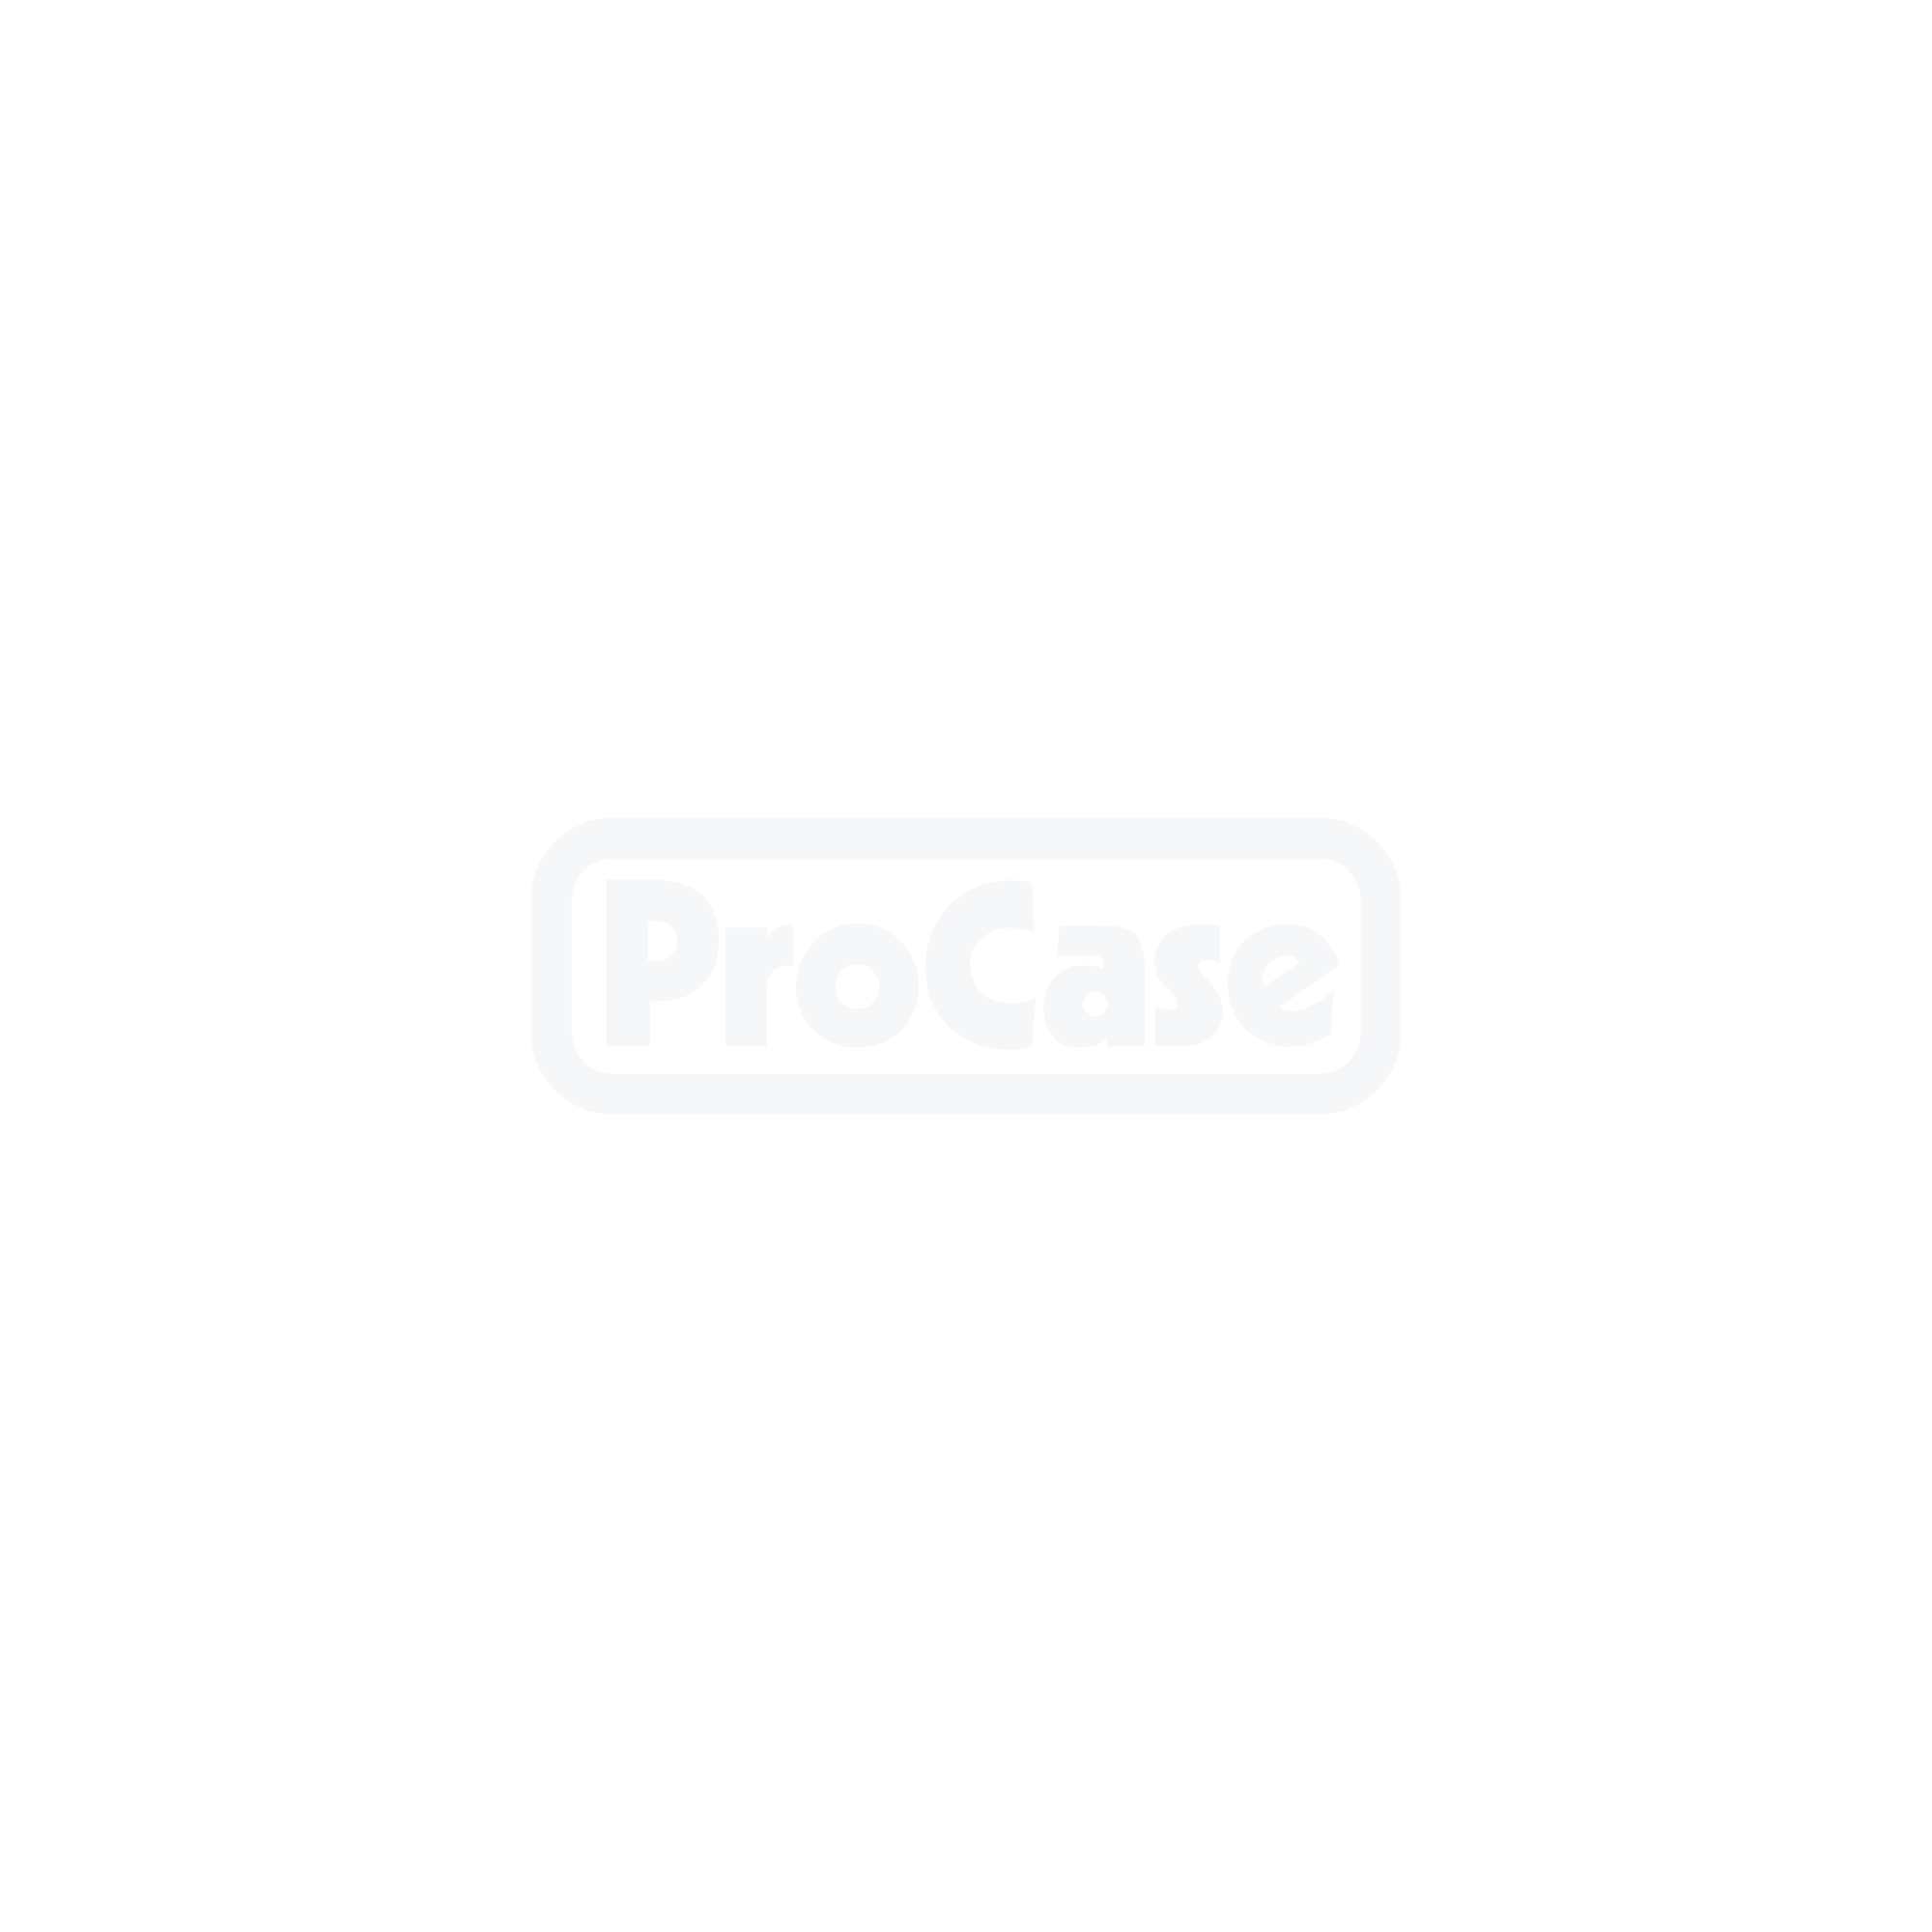 Flightcase für 3x LG 32LN5406 LED-TV